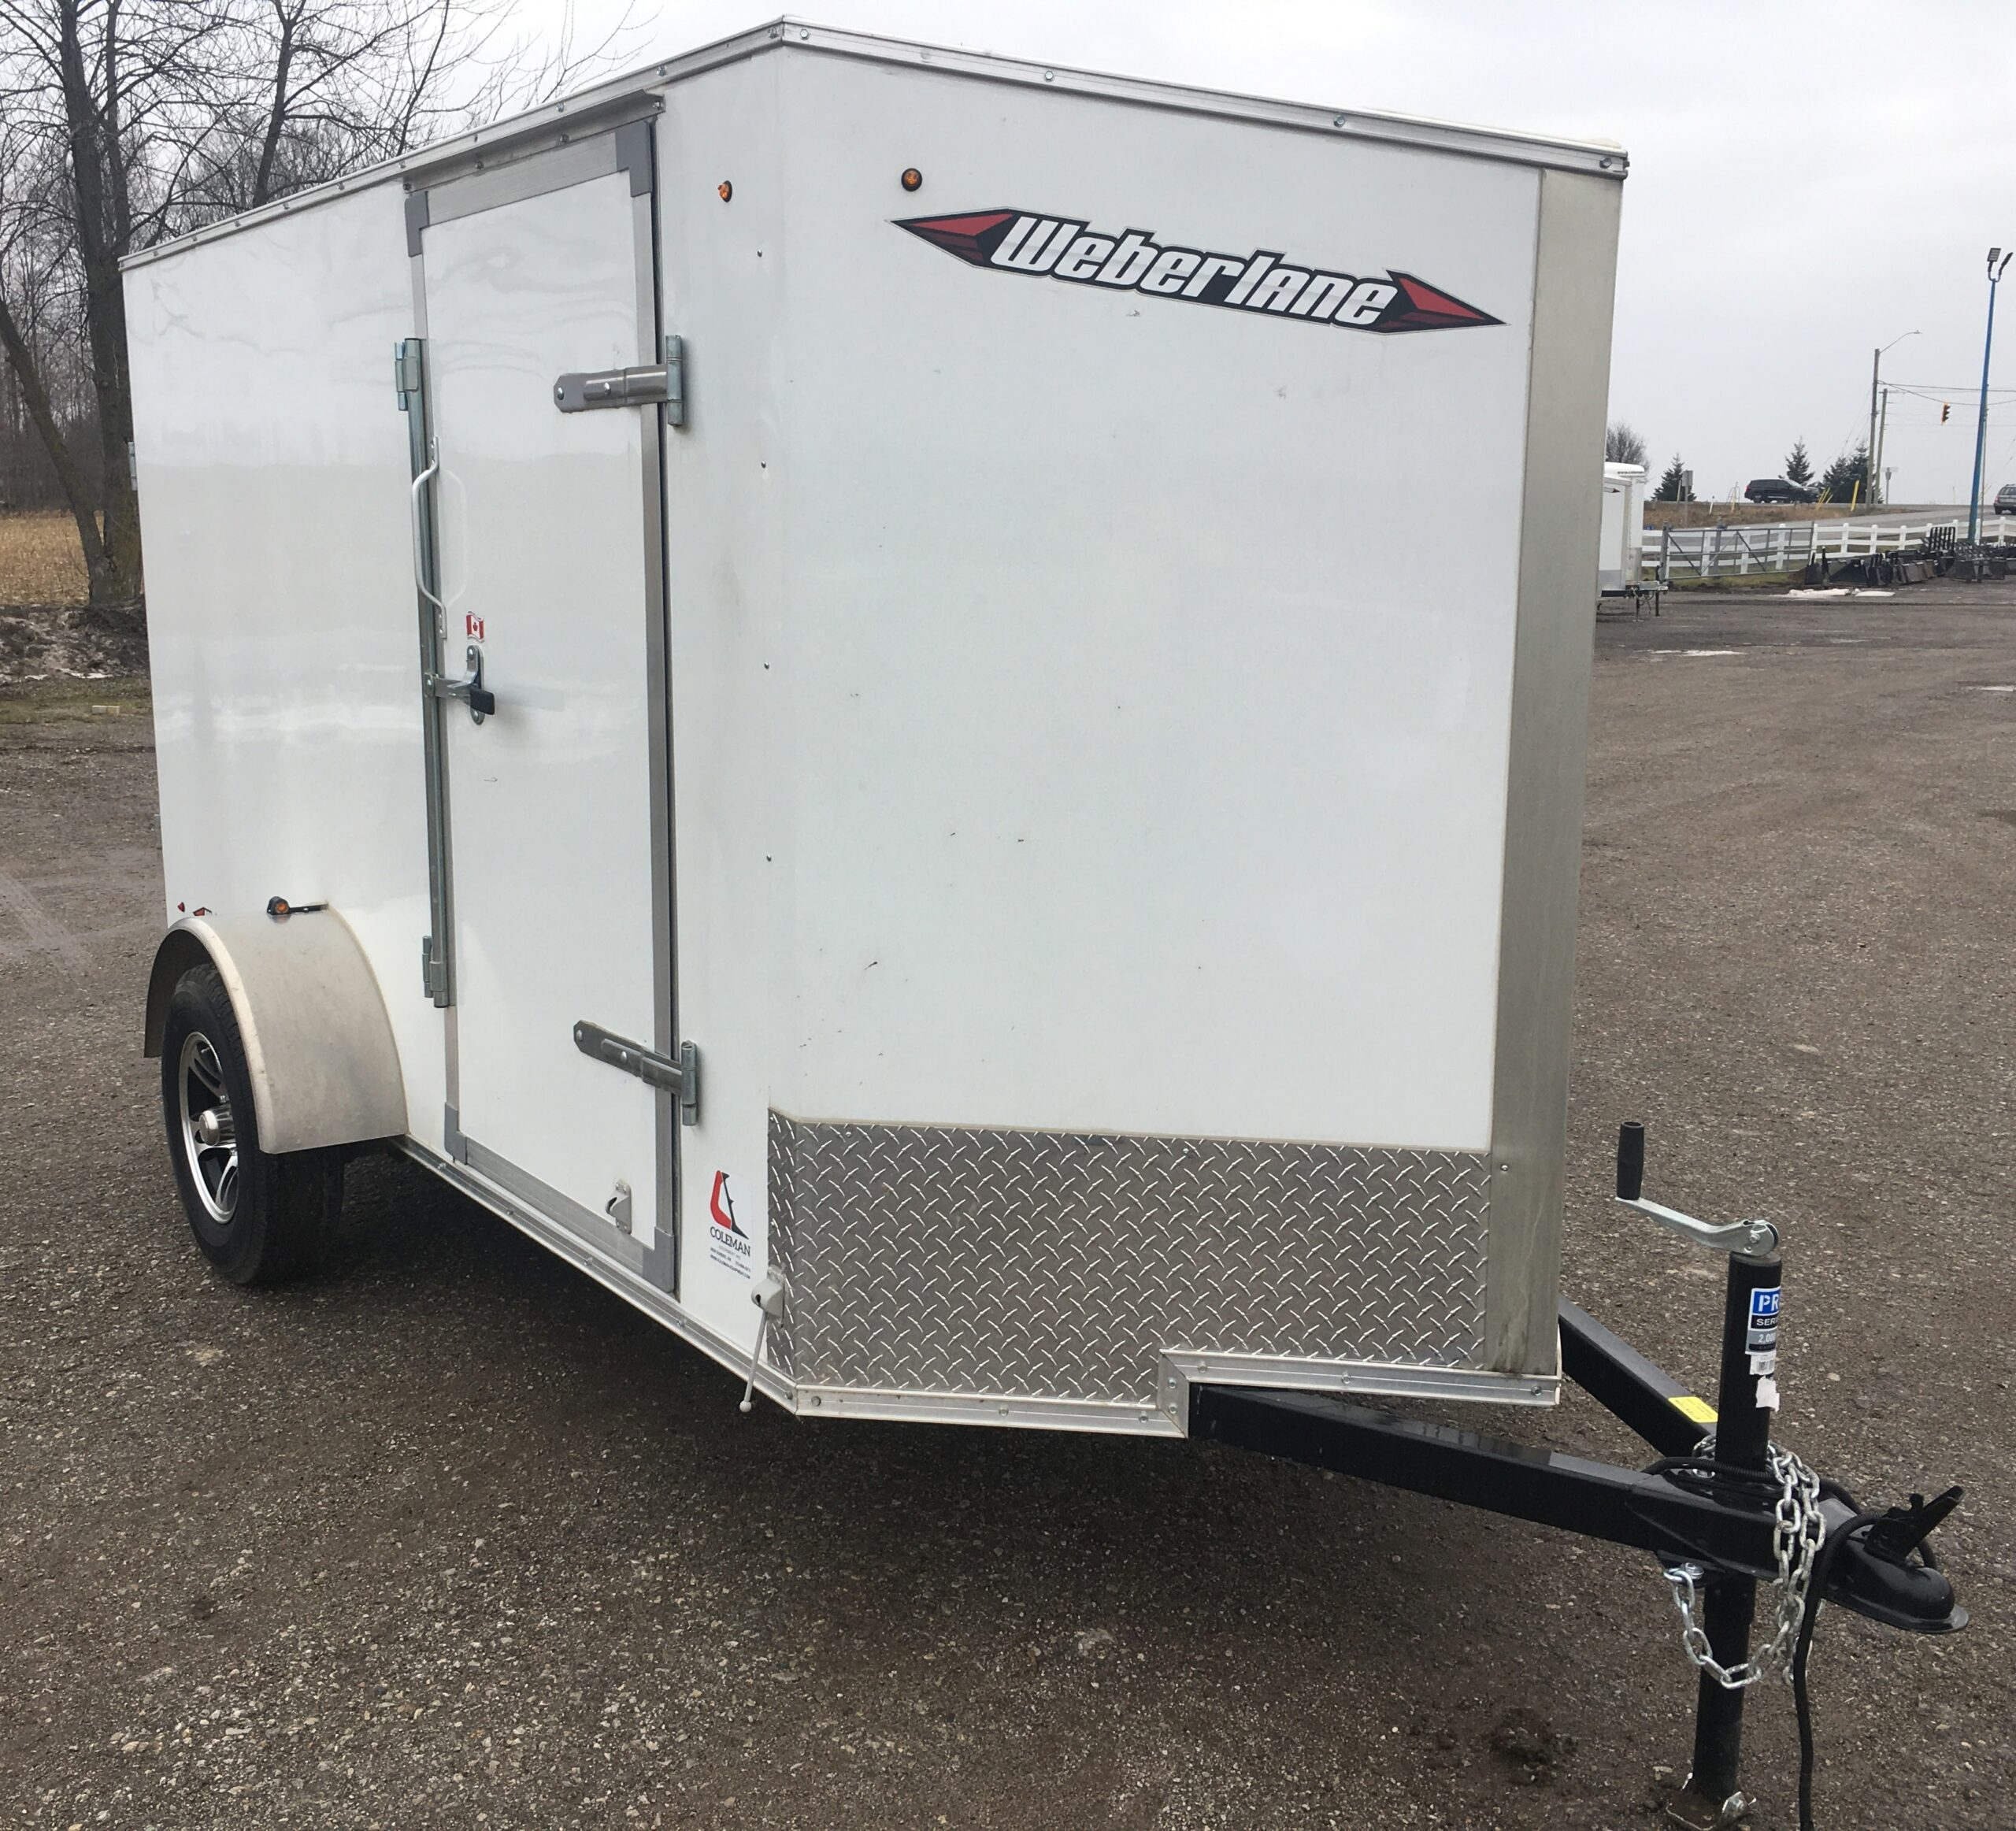 Enclosed Trailer 5X10 Weberlane Image